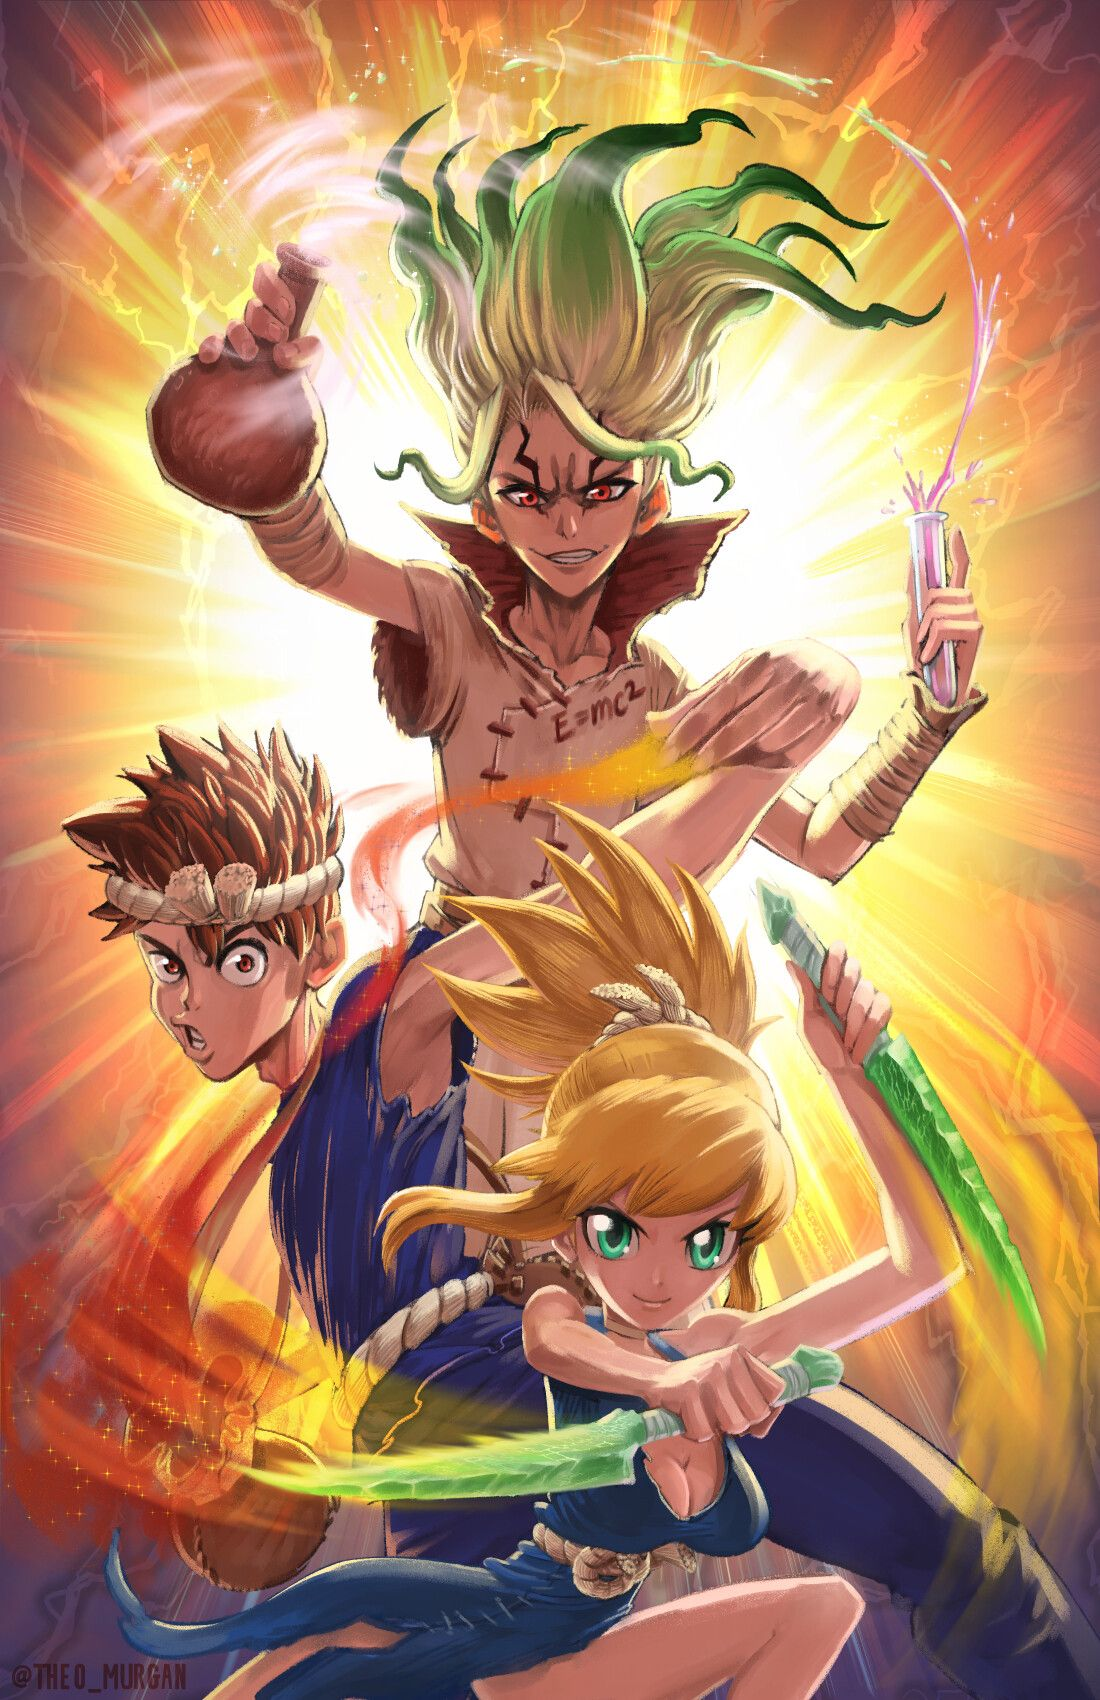 Dr. STONE is a serialized manga and anime series created